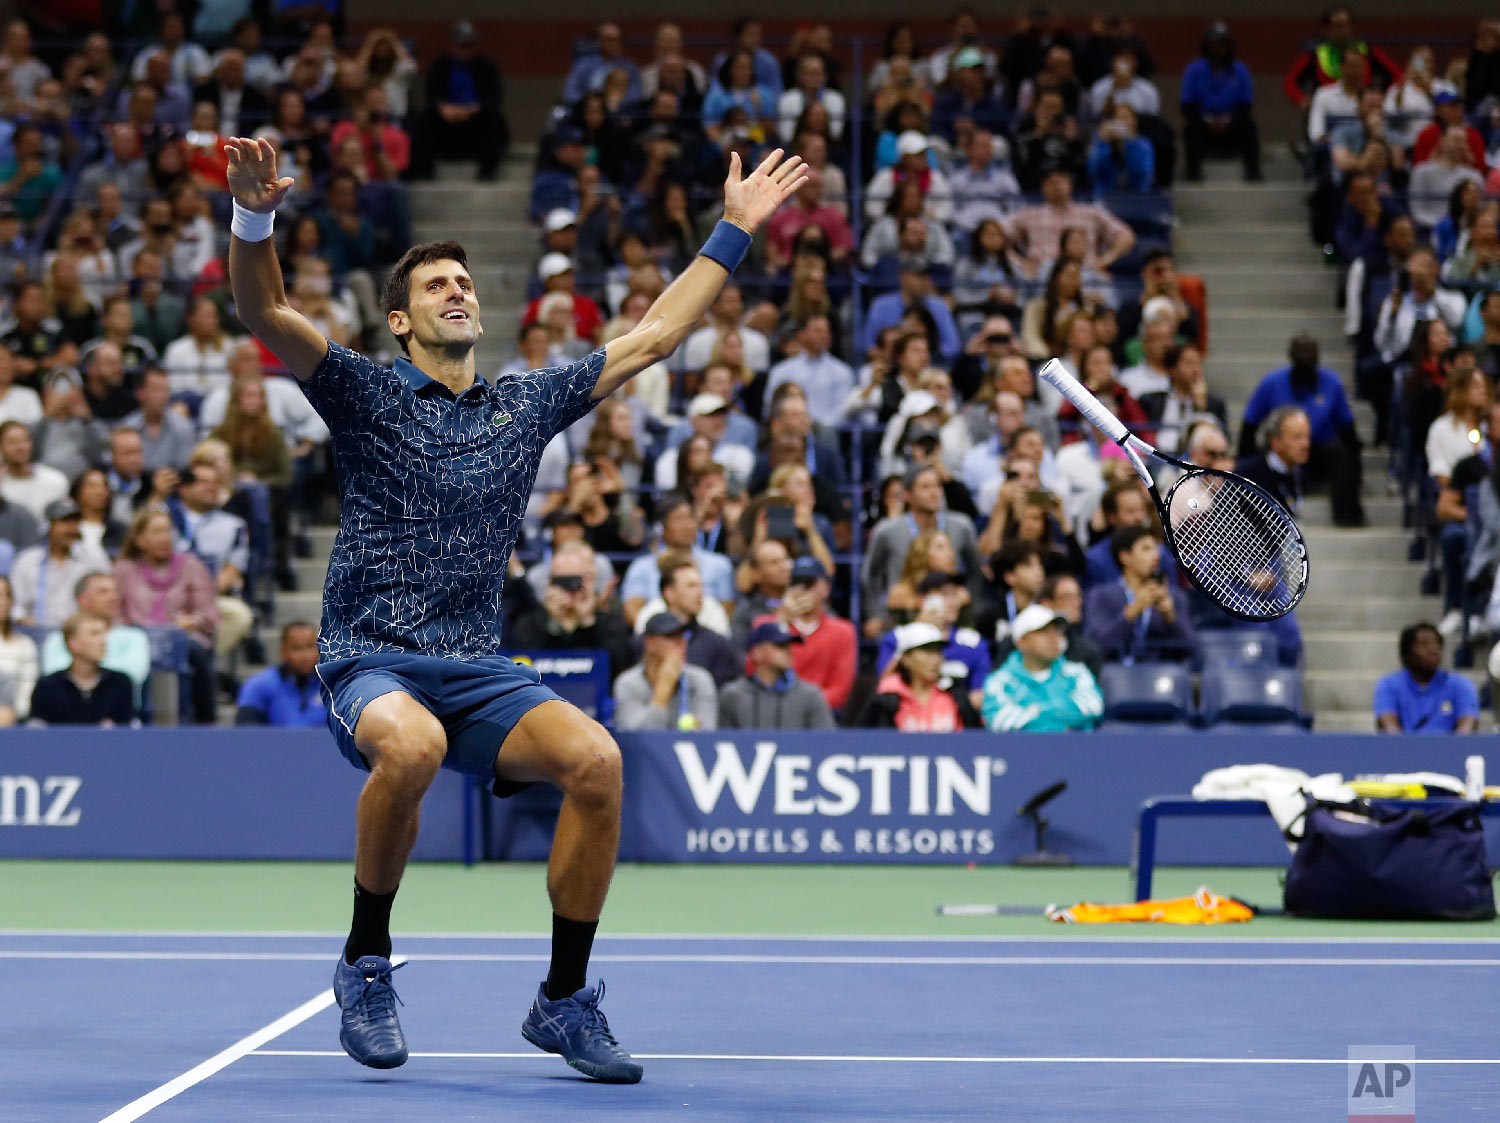 Novak Djokovic, of Serbia, celebrates after defeating Juan Martin del Potro, of Argentina, during the men's final of the U.S. Open tennis tournament on Sept. 9, 2018, in New York. (AP Photo/Adam Hunger)